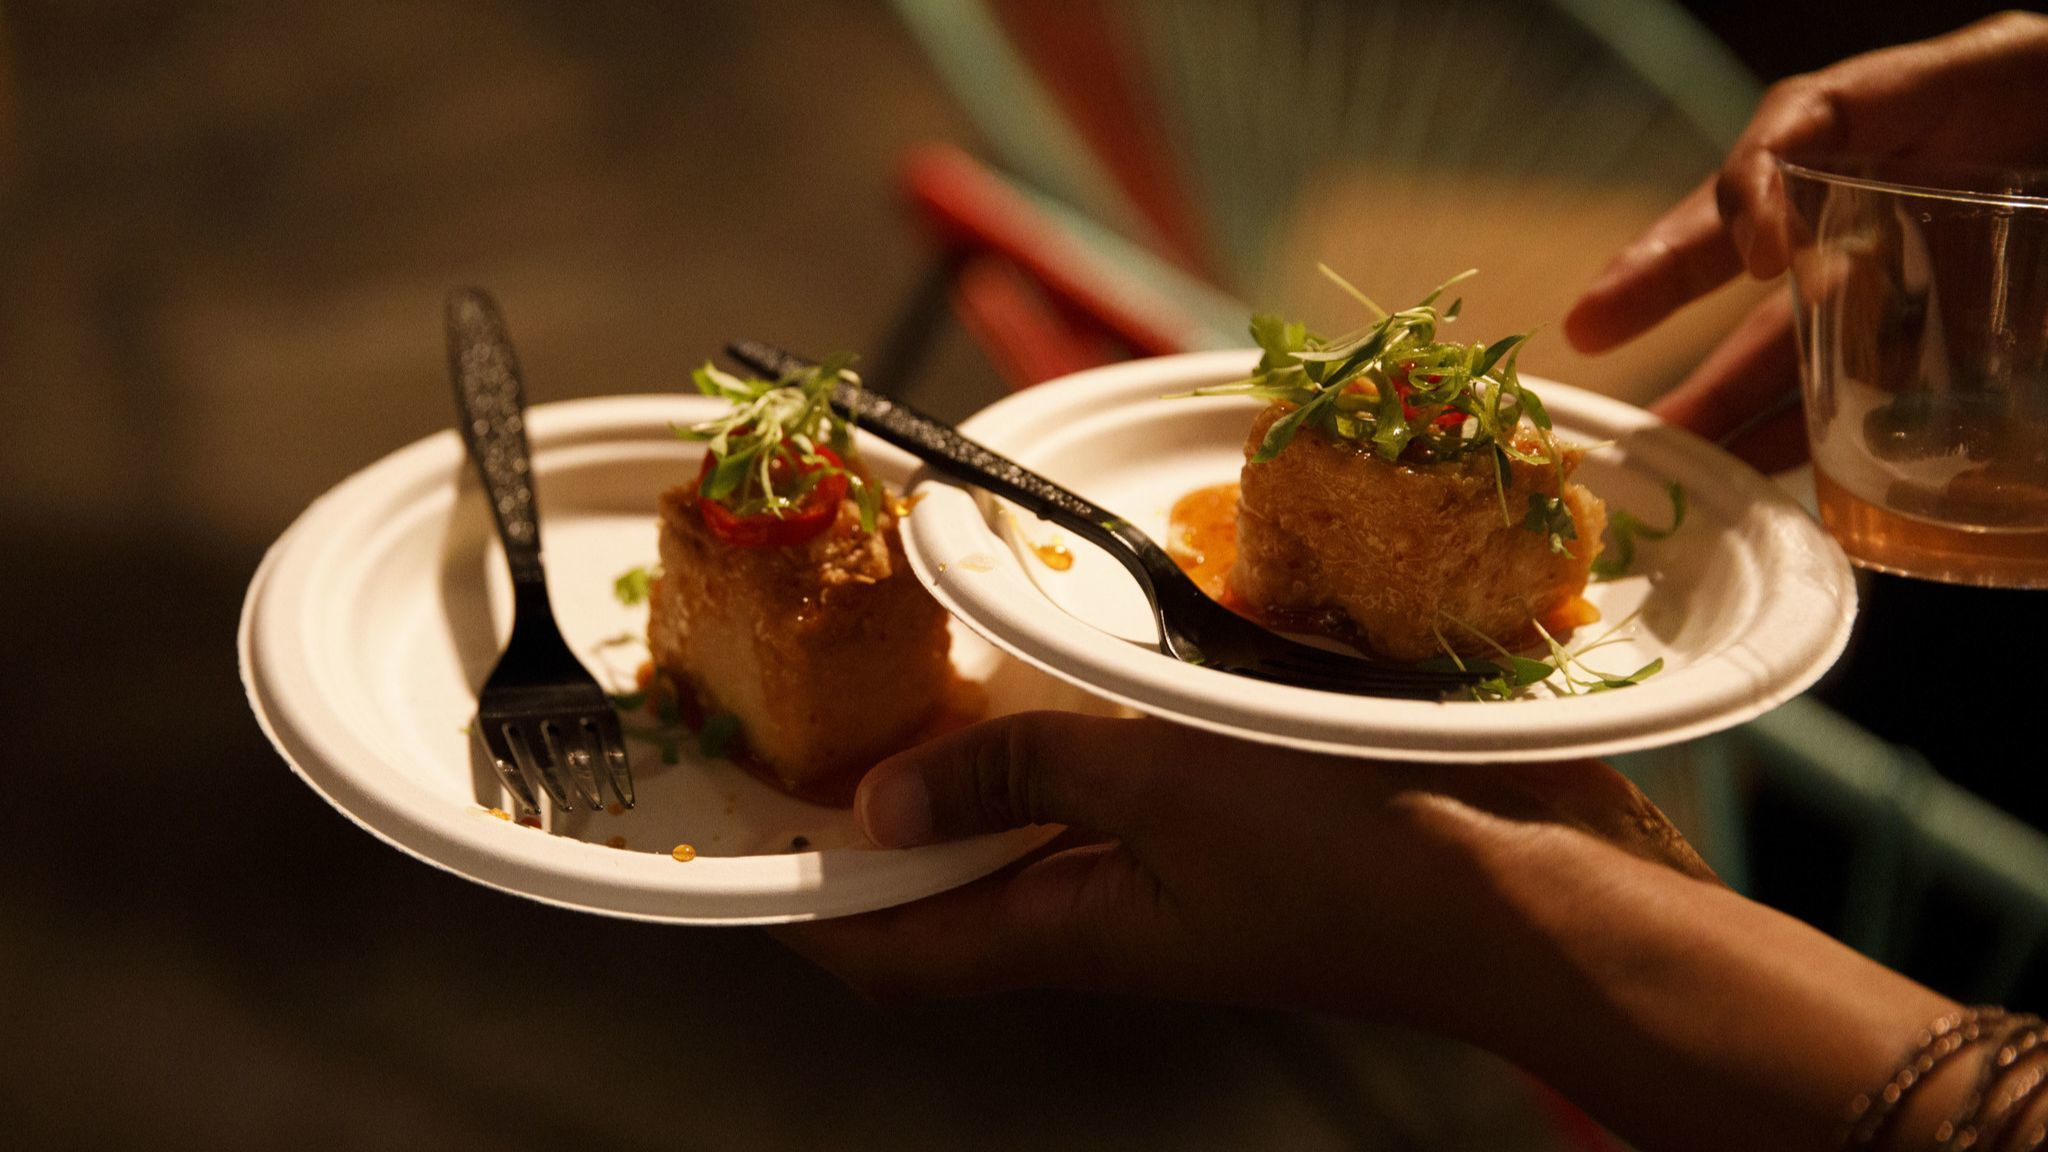 Sticky Tofu bites from Banh Oui during The Taste on the Paramount Studios backlot on Monday, Septemb